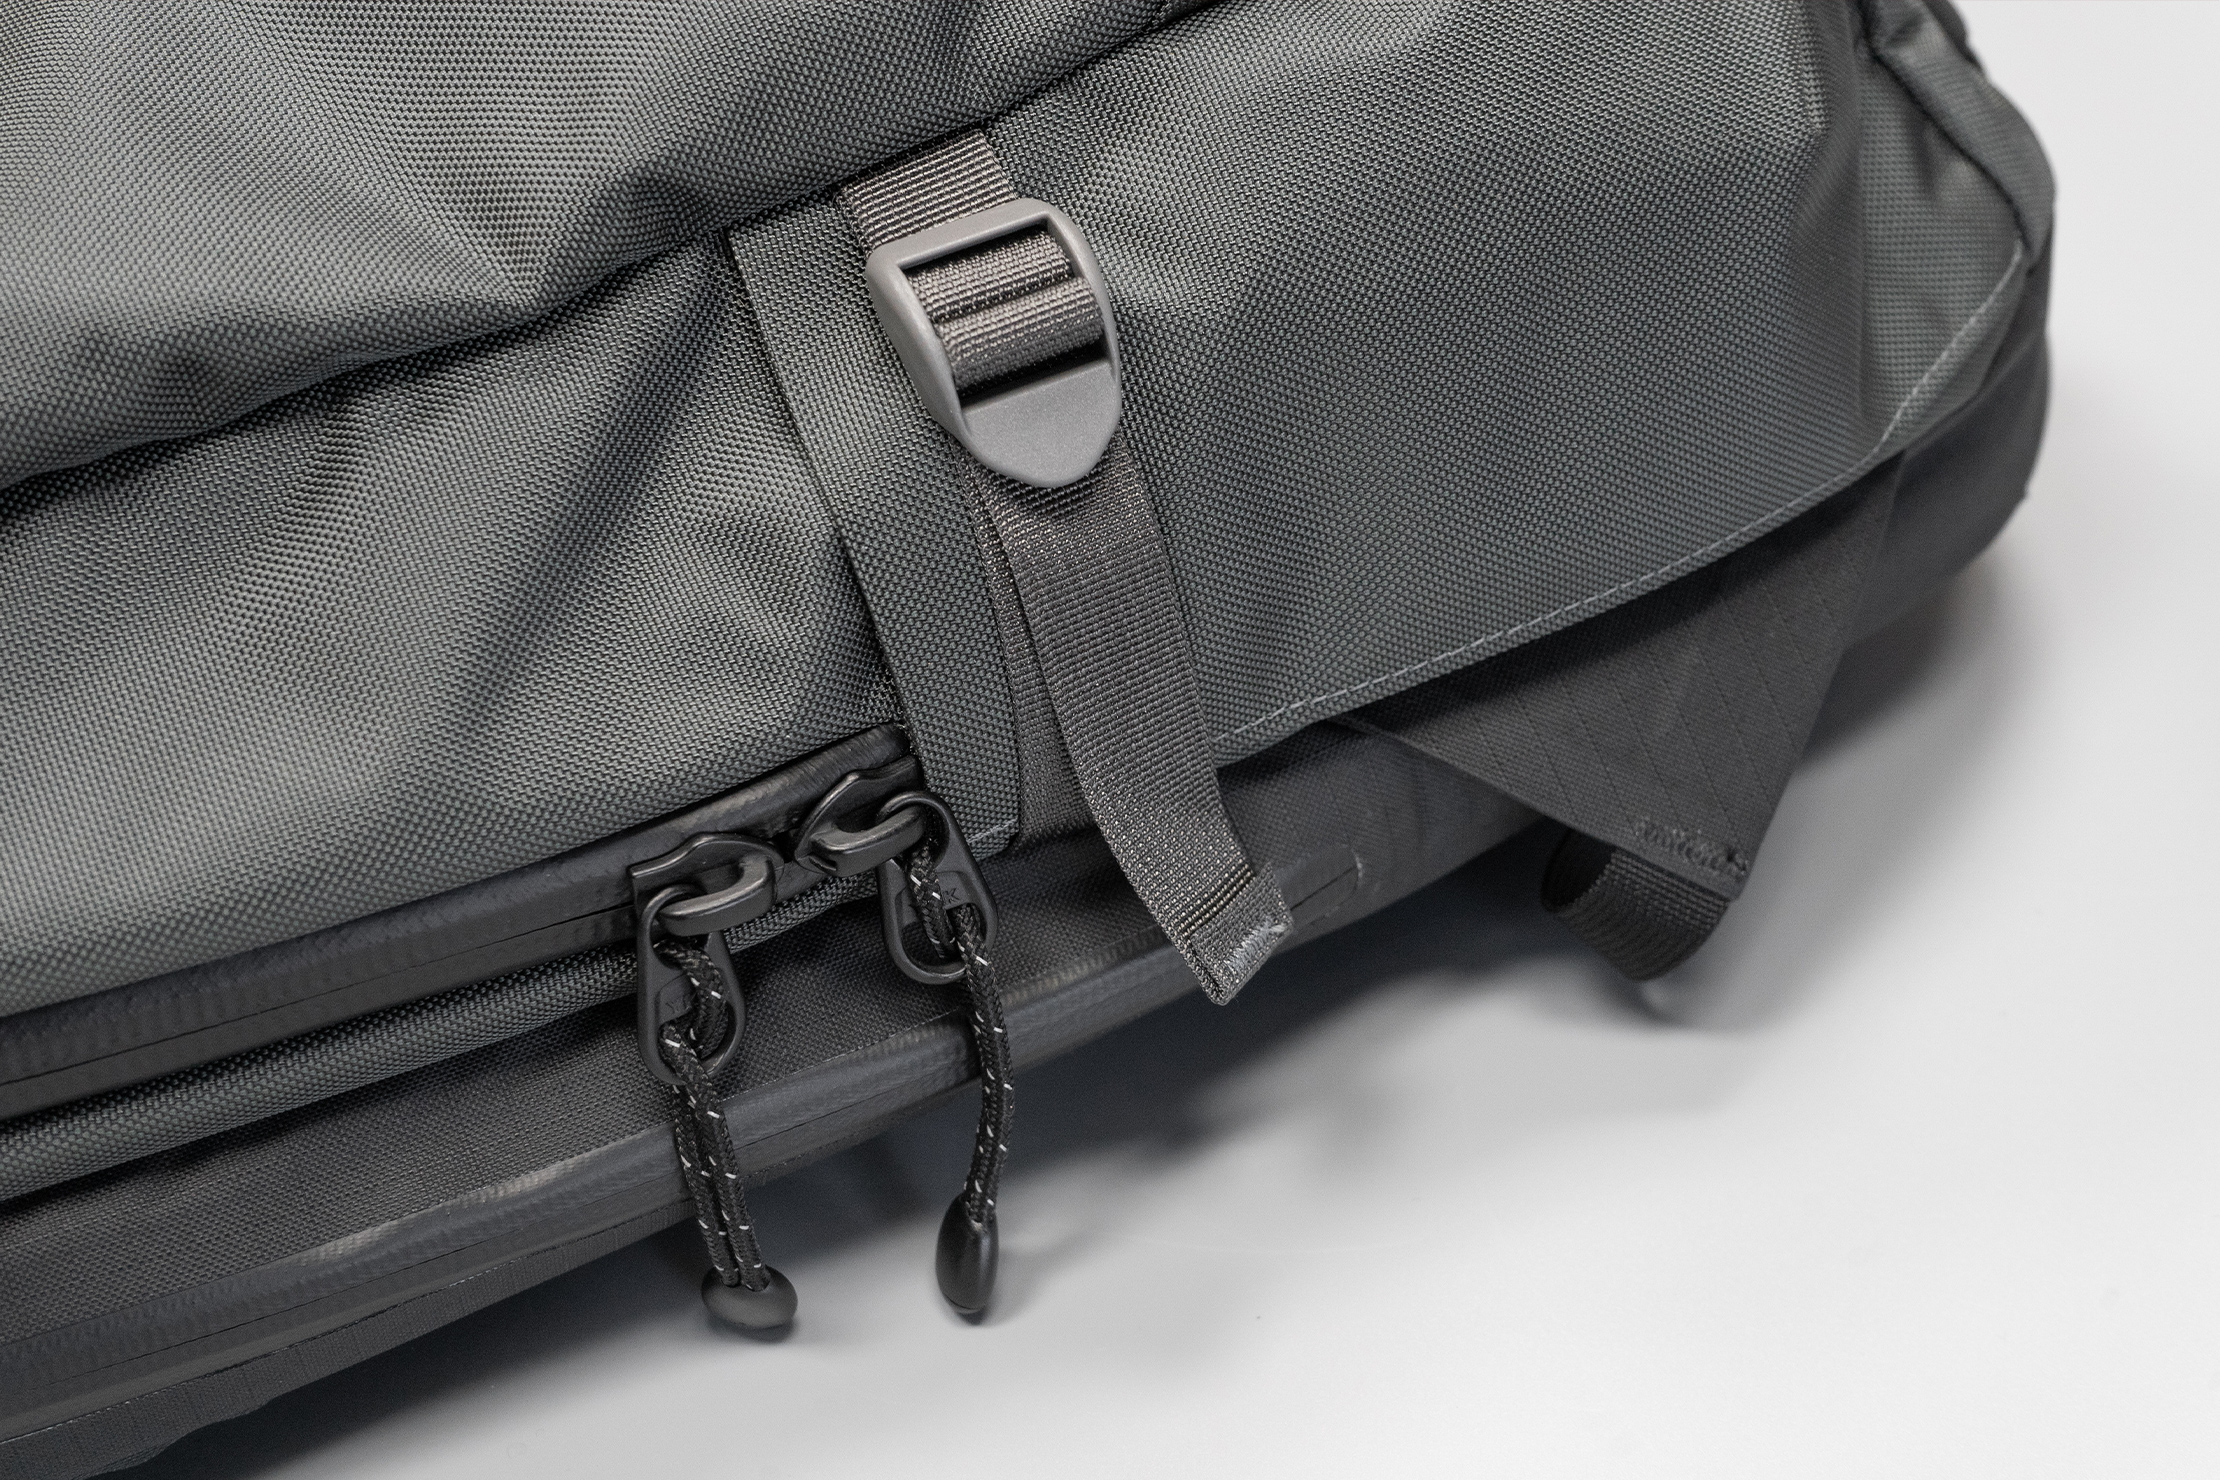 Lander Commuter Backpack 25L | DWR-coated CORDURA EcoMade Nylon, YKK zippers, and Woojin Hardware—it's tough stuff